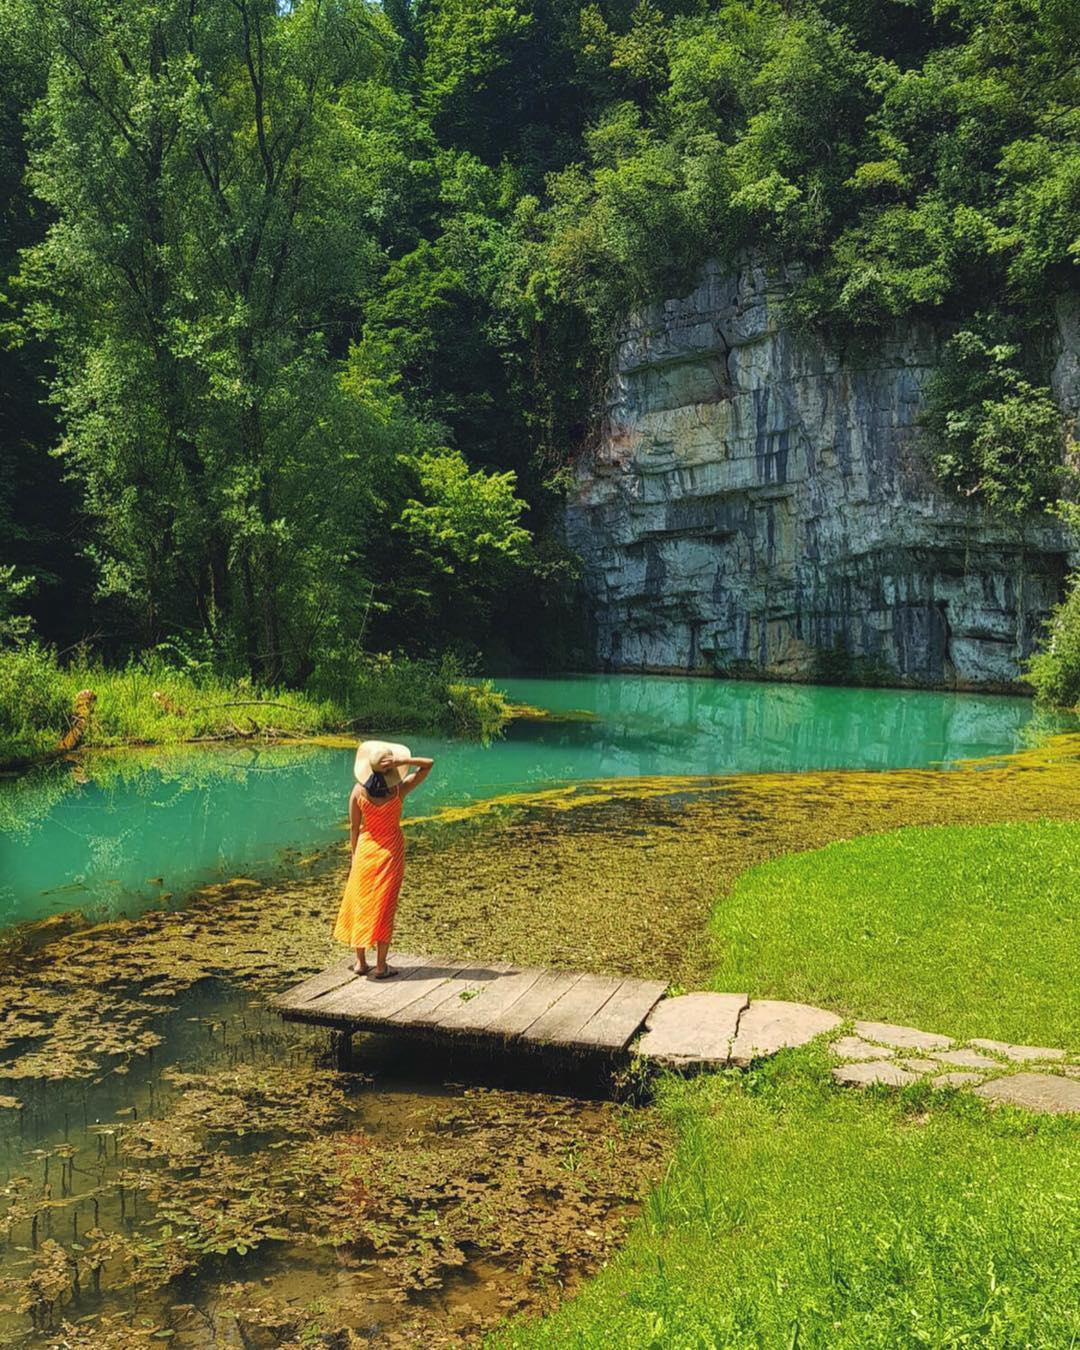 With its diversity, Slovenia is a land of many peaceful green spots to rest your mind. . The Krupa is a 2.5 km (1.6 mi) river in Bela Krajina - White Carniola, southeastern Slovenia. Its source is a karst spring in the village of Krupa below a rock wall.  . Thanks @thewanderlustwithin for sharing your photo with #ifeelsLOVEnia.